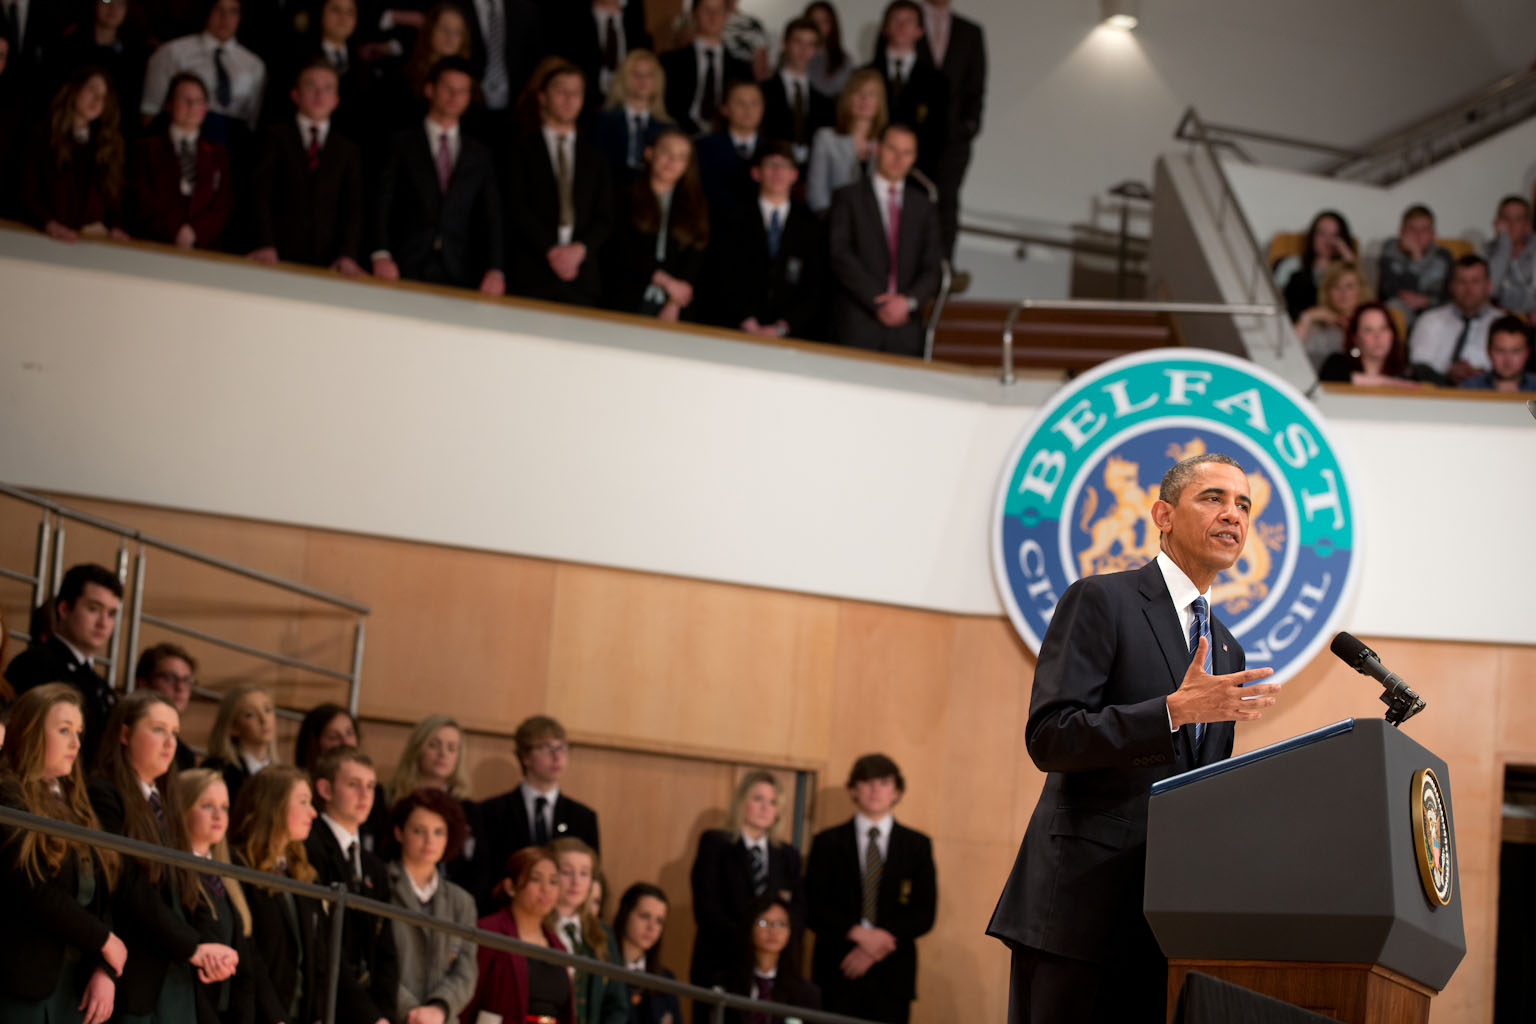 President Barack Obama delivers remarks at the Belfast Waterfront Convention Center